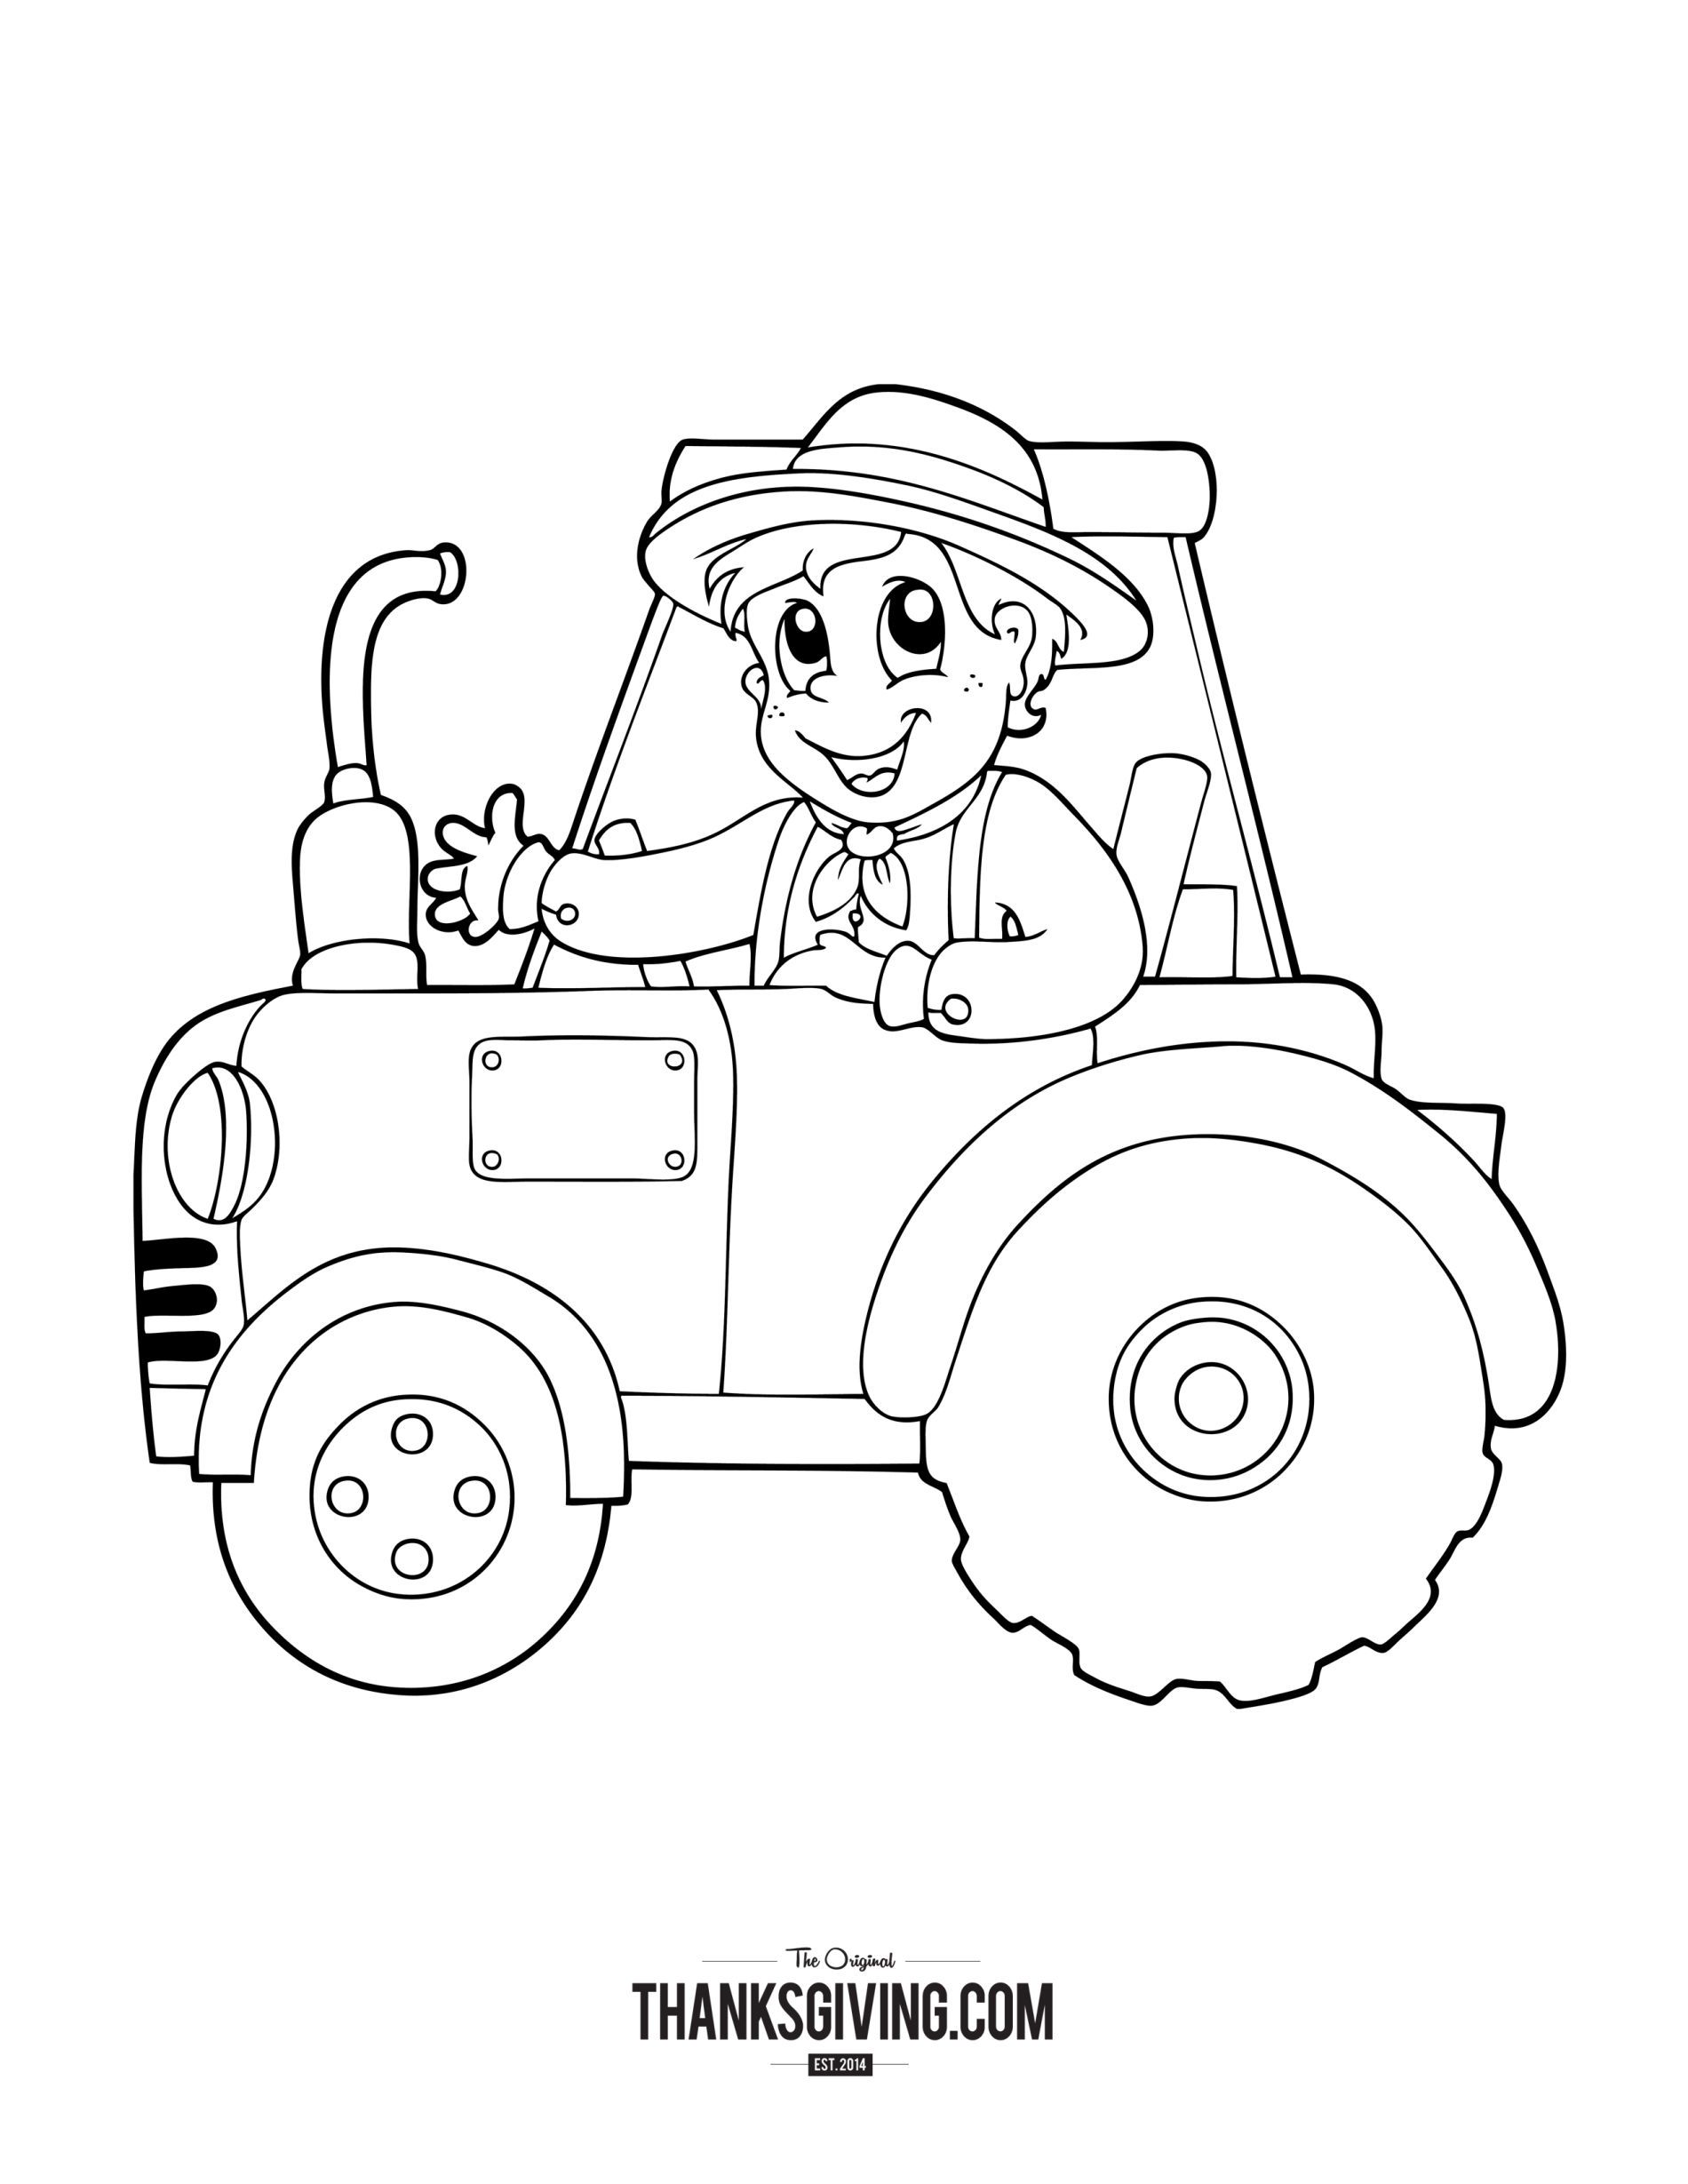 Coloring Book Pages for Kids | Thanksgiving printables | Coloring ...